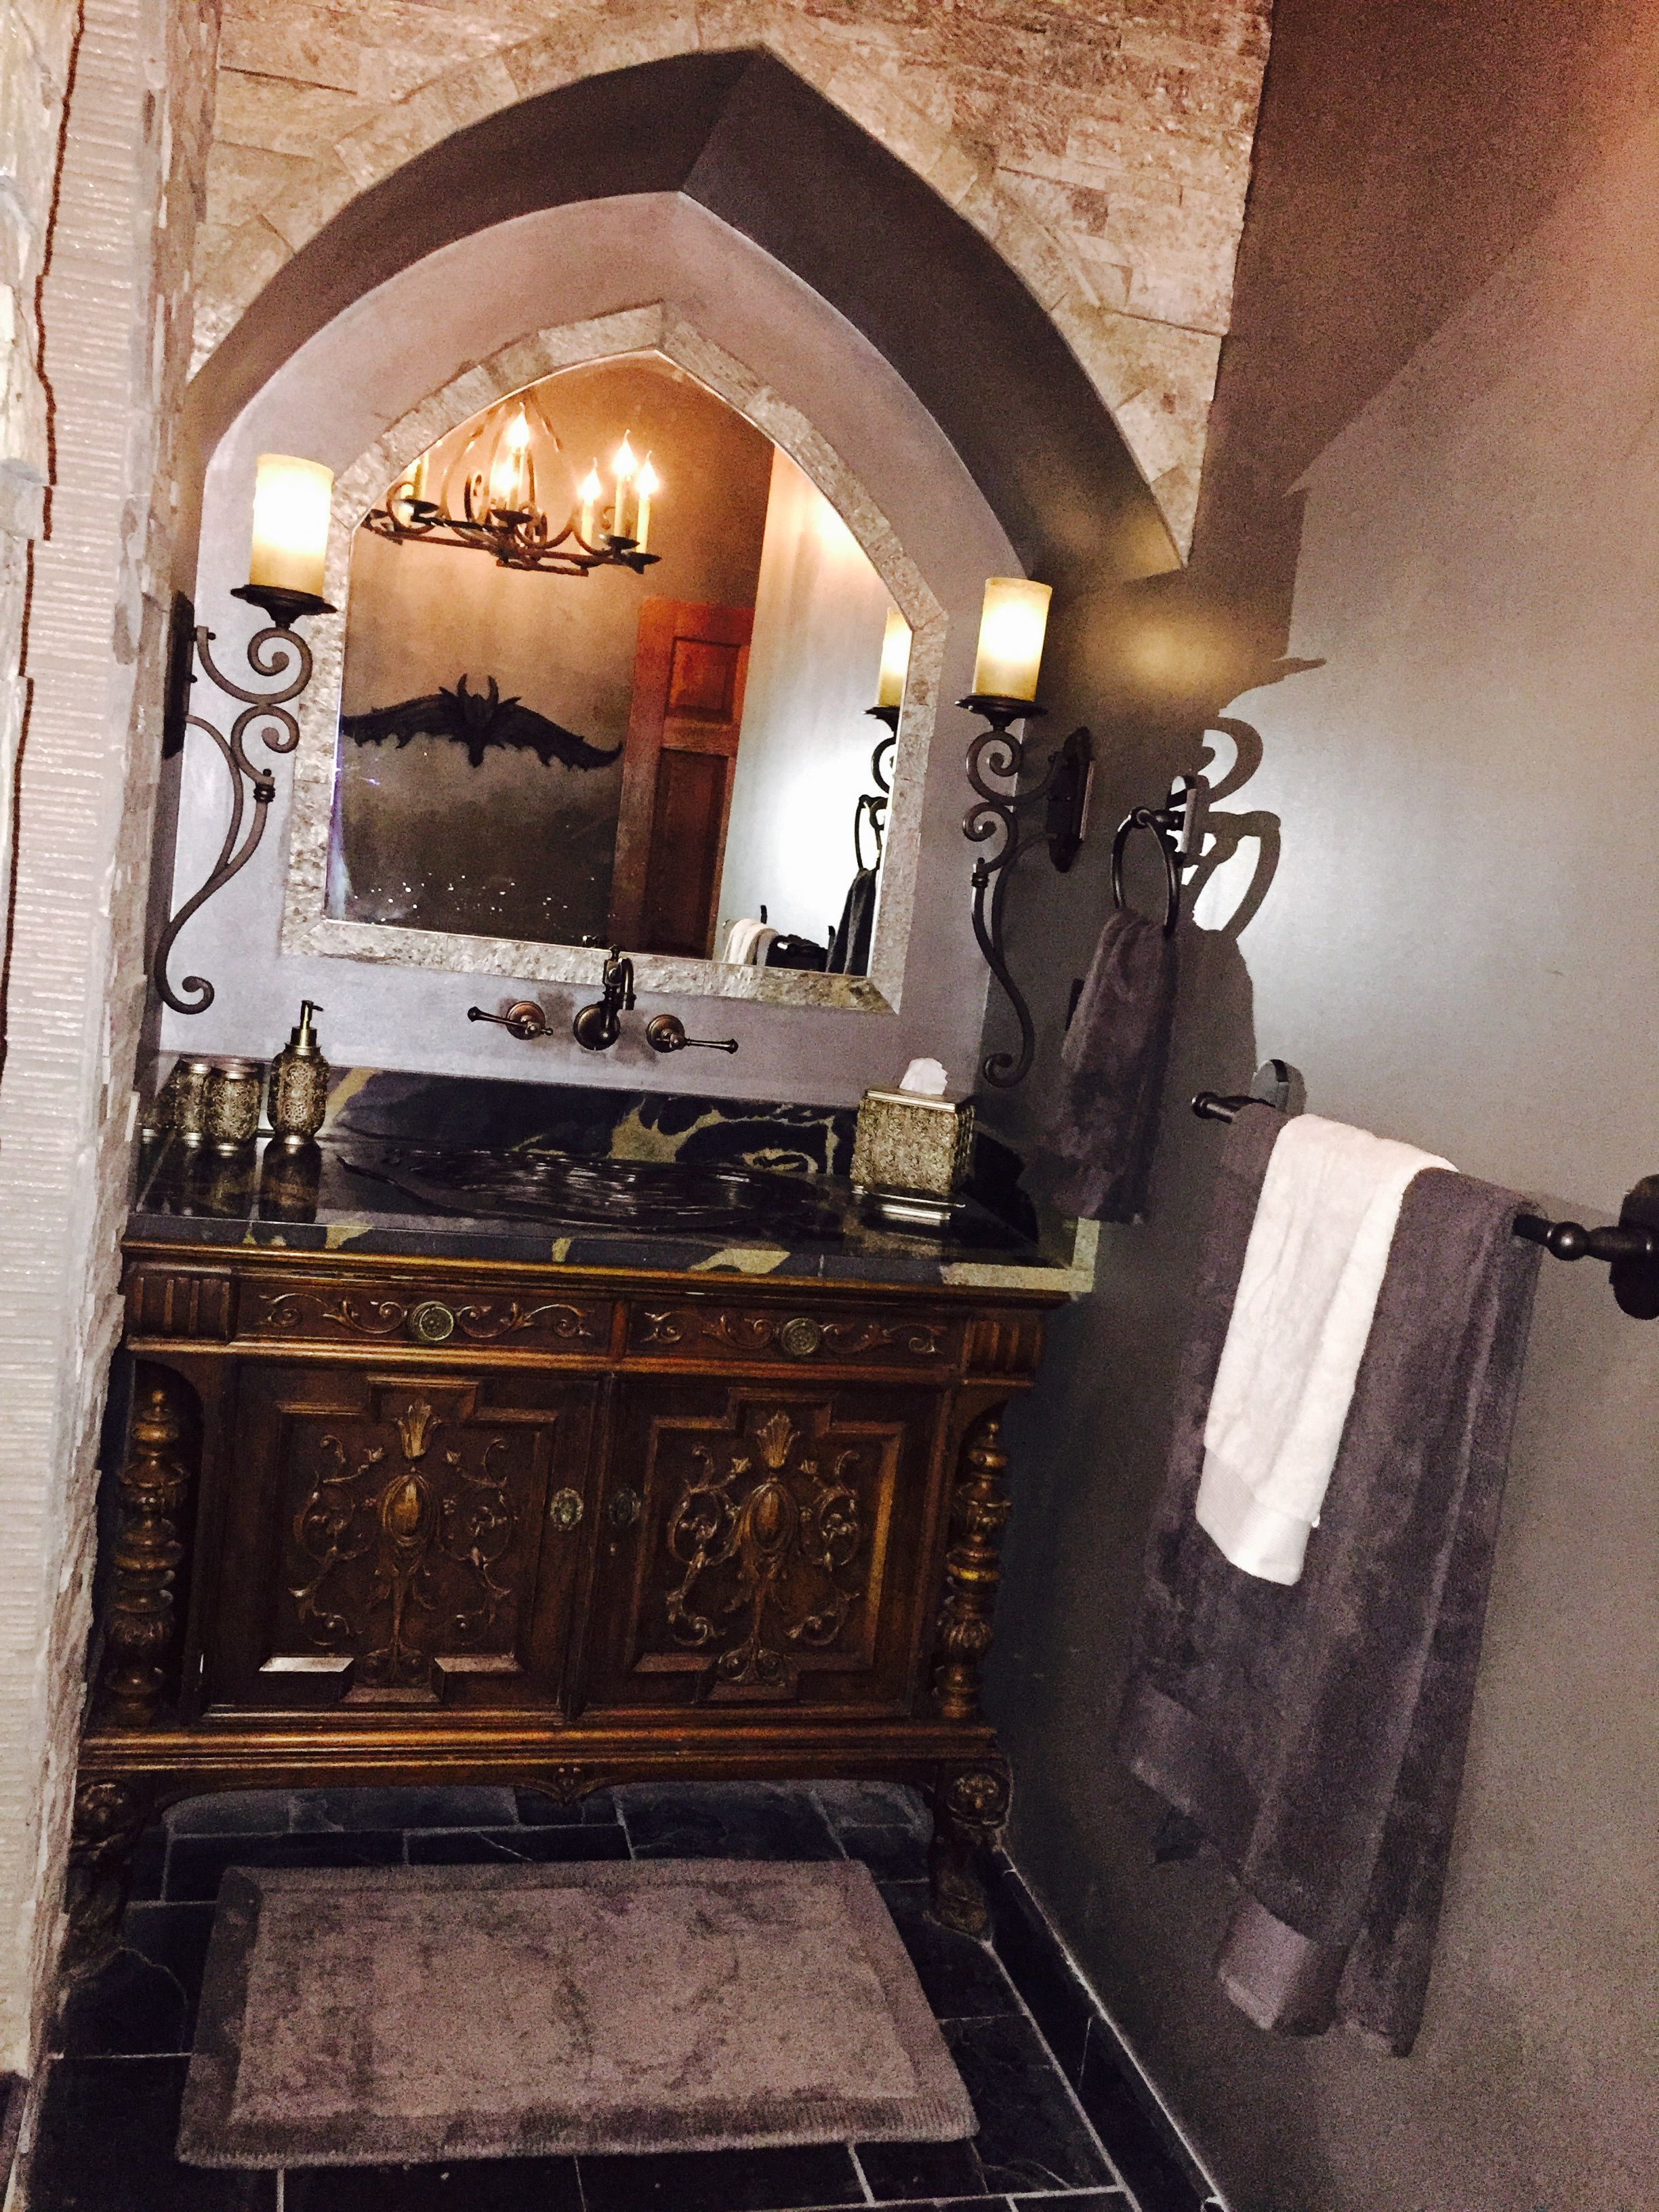 Arched Stone Vanity Area In Our Main Floor Guest Old World Castle Bathroom Old World Bathroom Old World Style Bathroom Styling